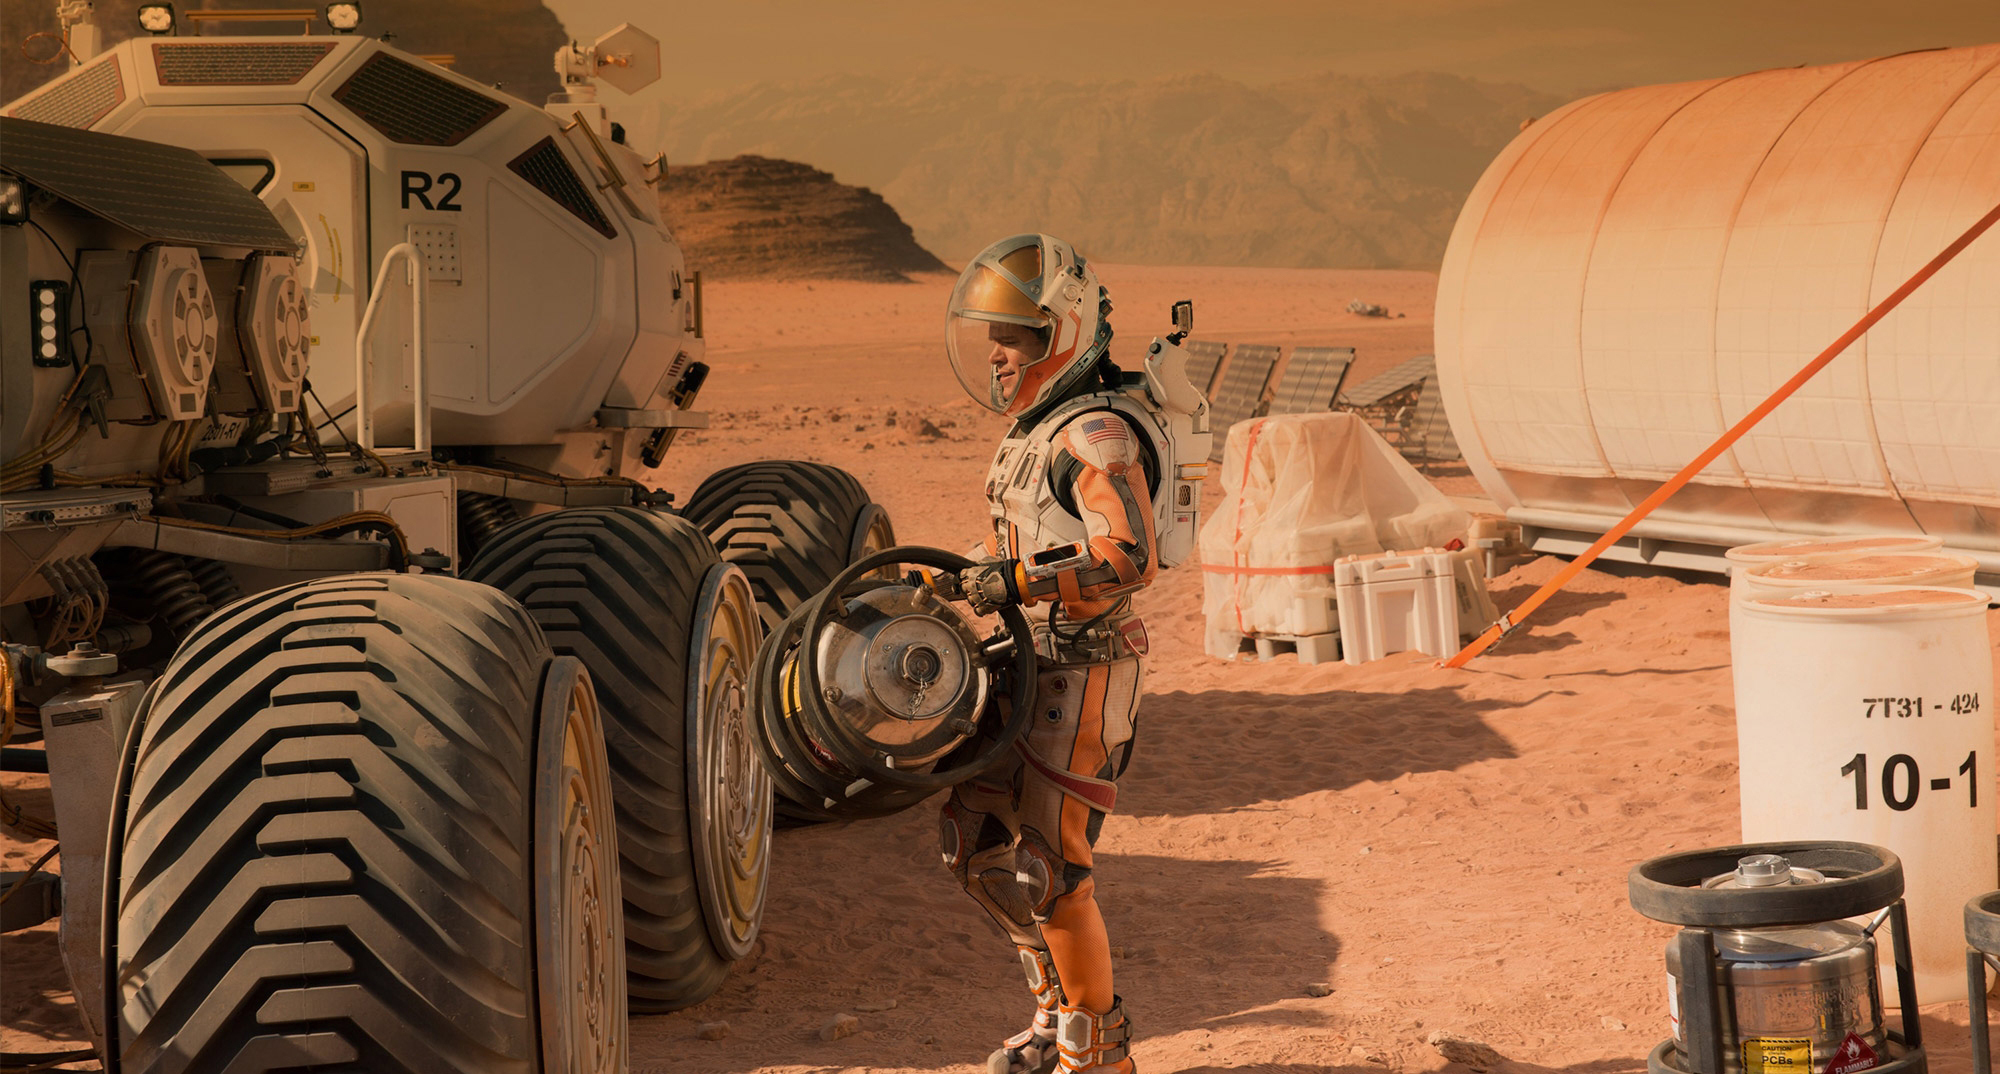 Is It Moral To Explore, And Colonize, Mars?